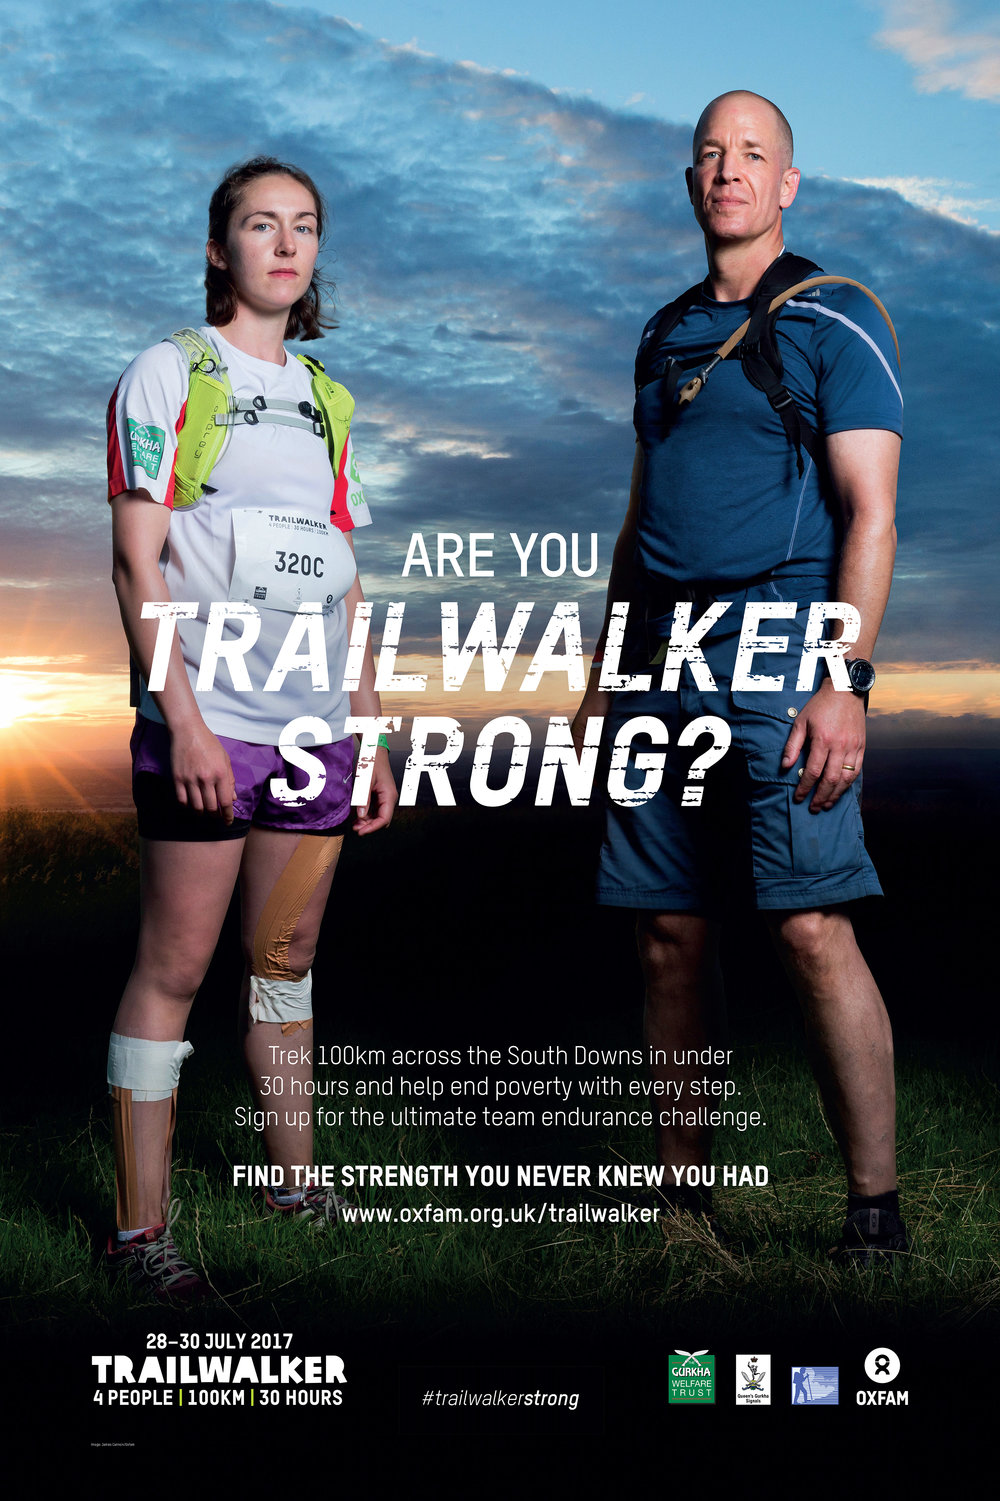 Social_7179_Trailwalker_6-Sheet_1800mm_x_1200mm.jpg